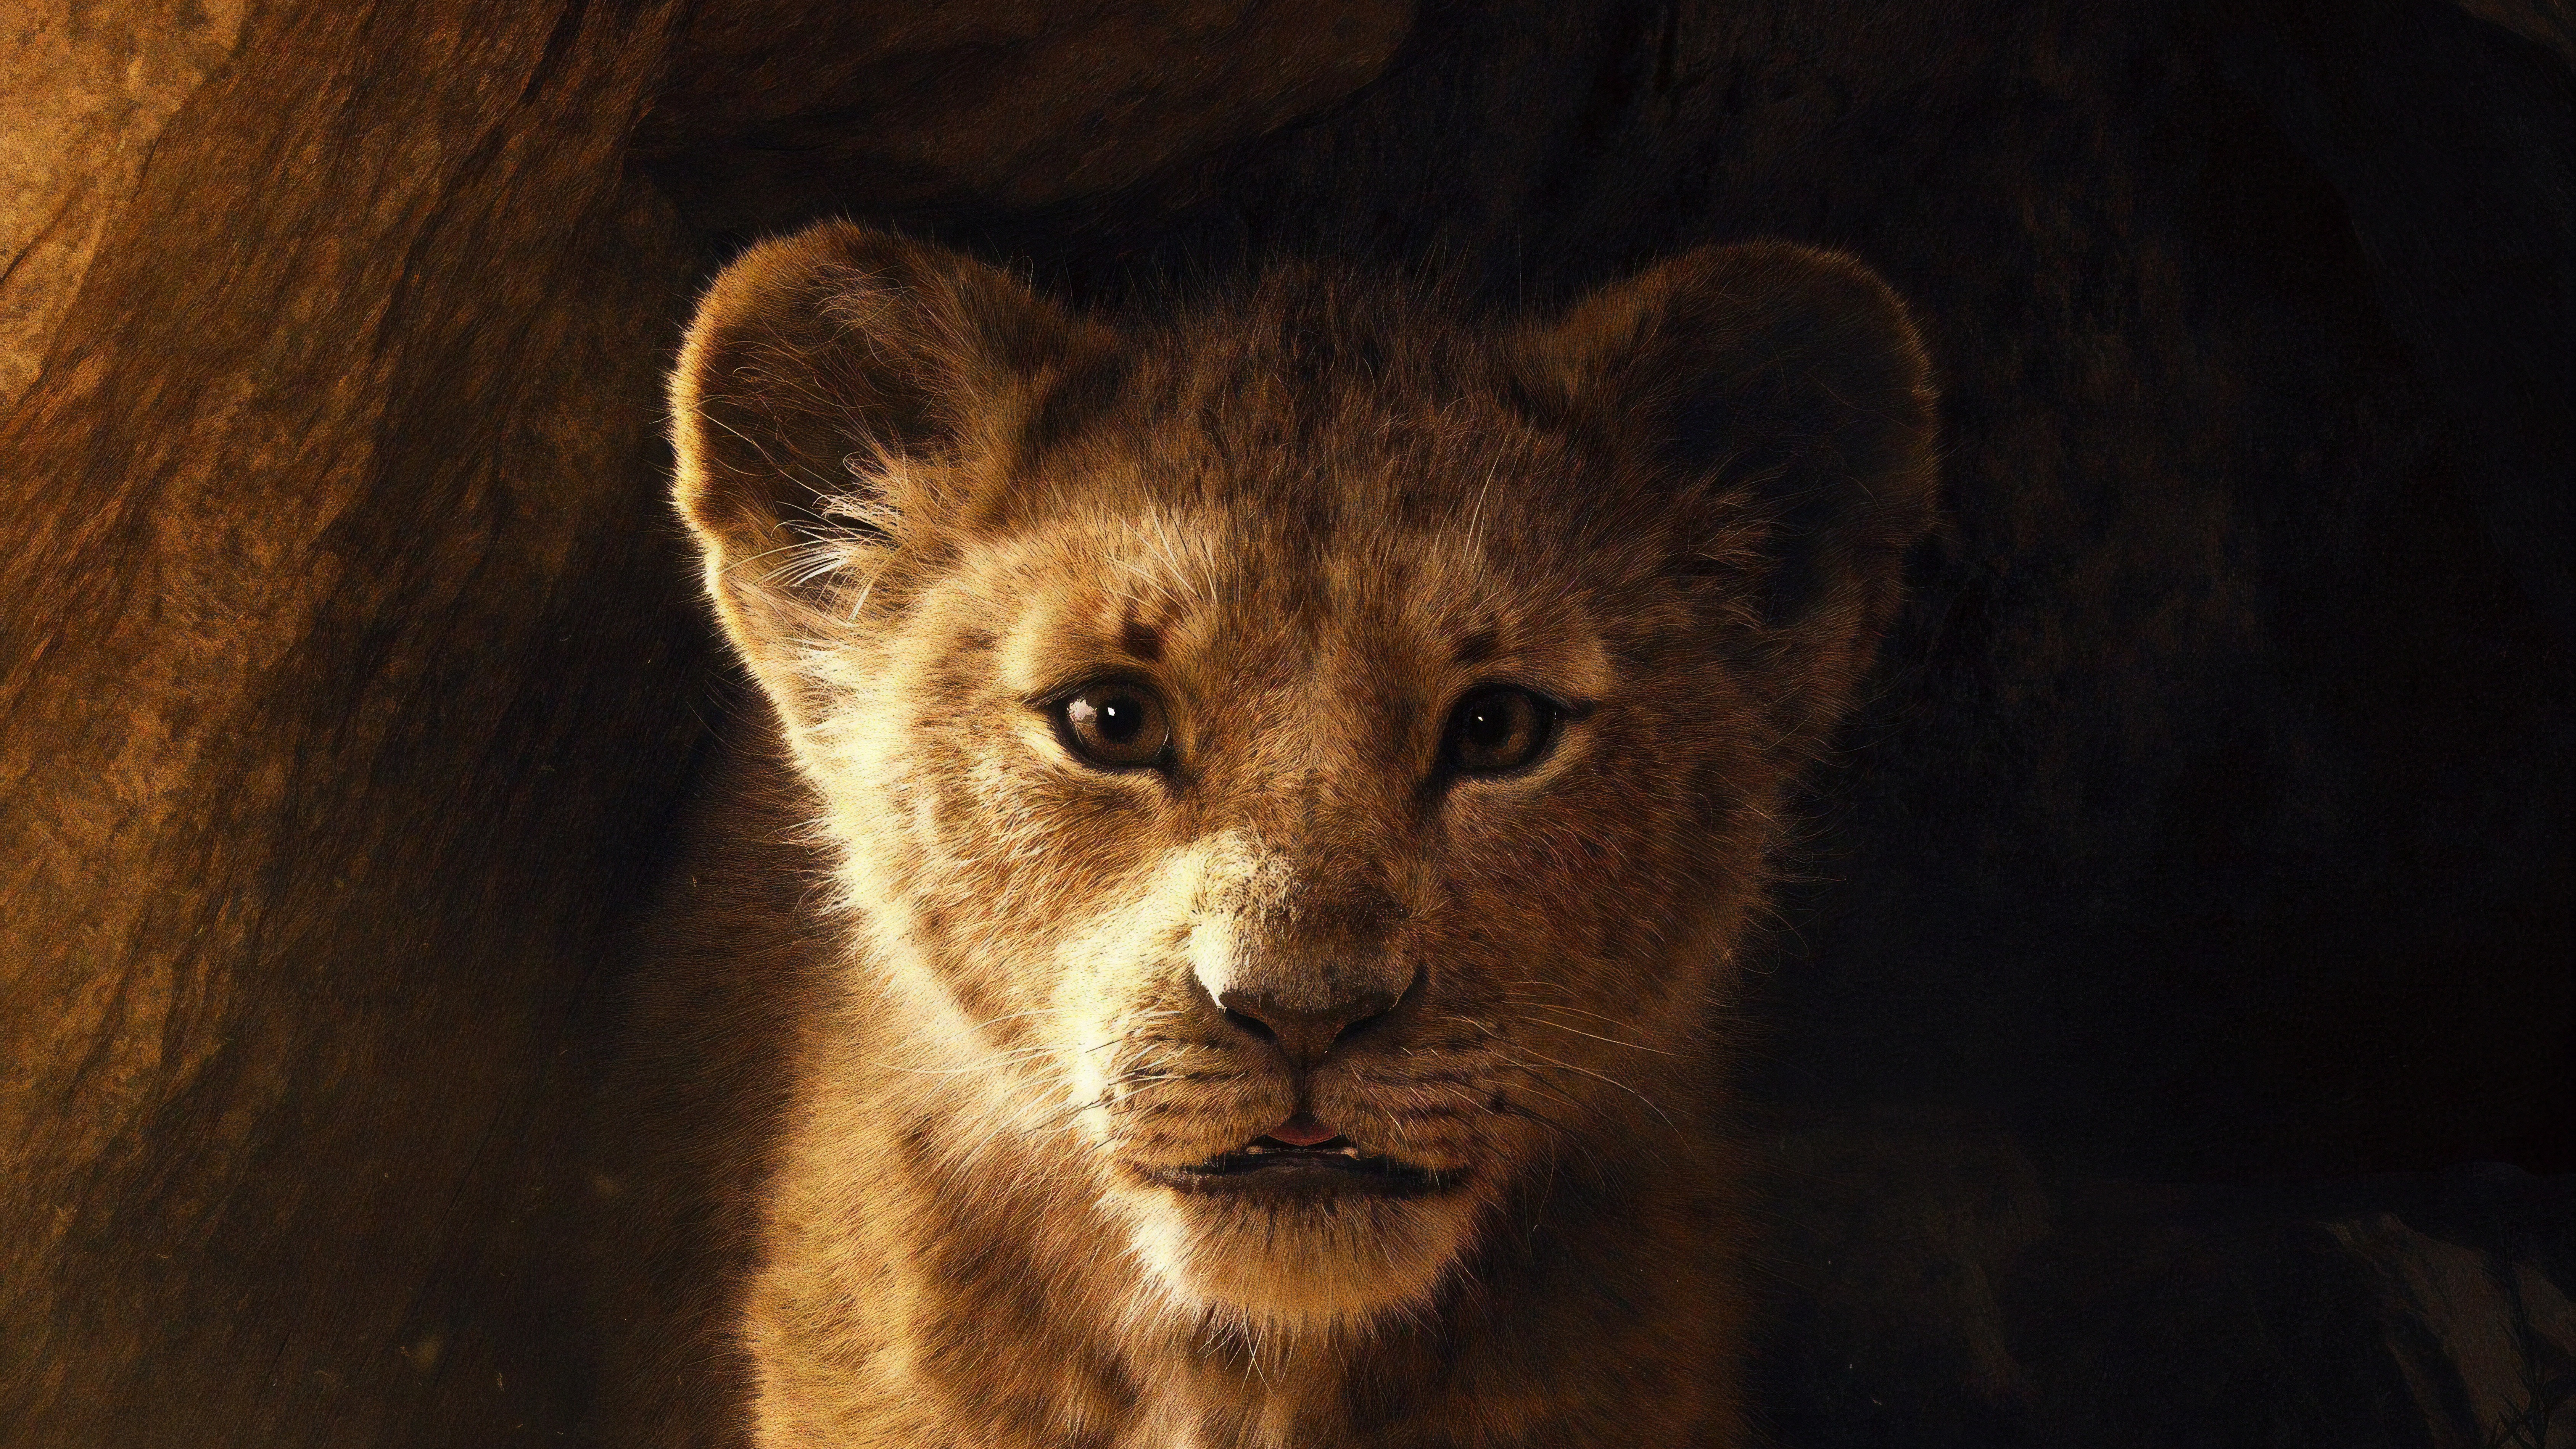 The Lion King 2019 Hd Movies 4k Wallpapers Images Backgrounds